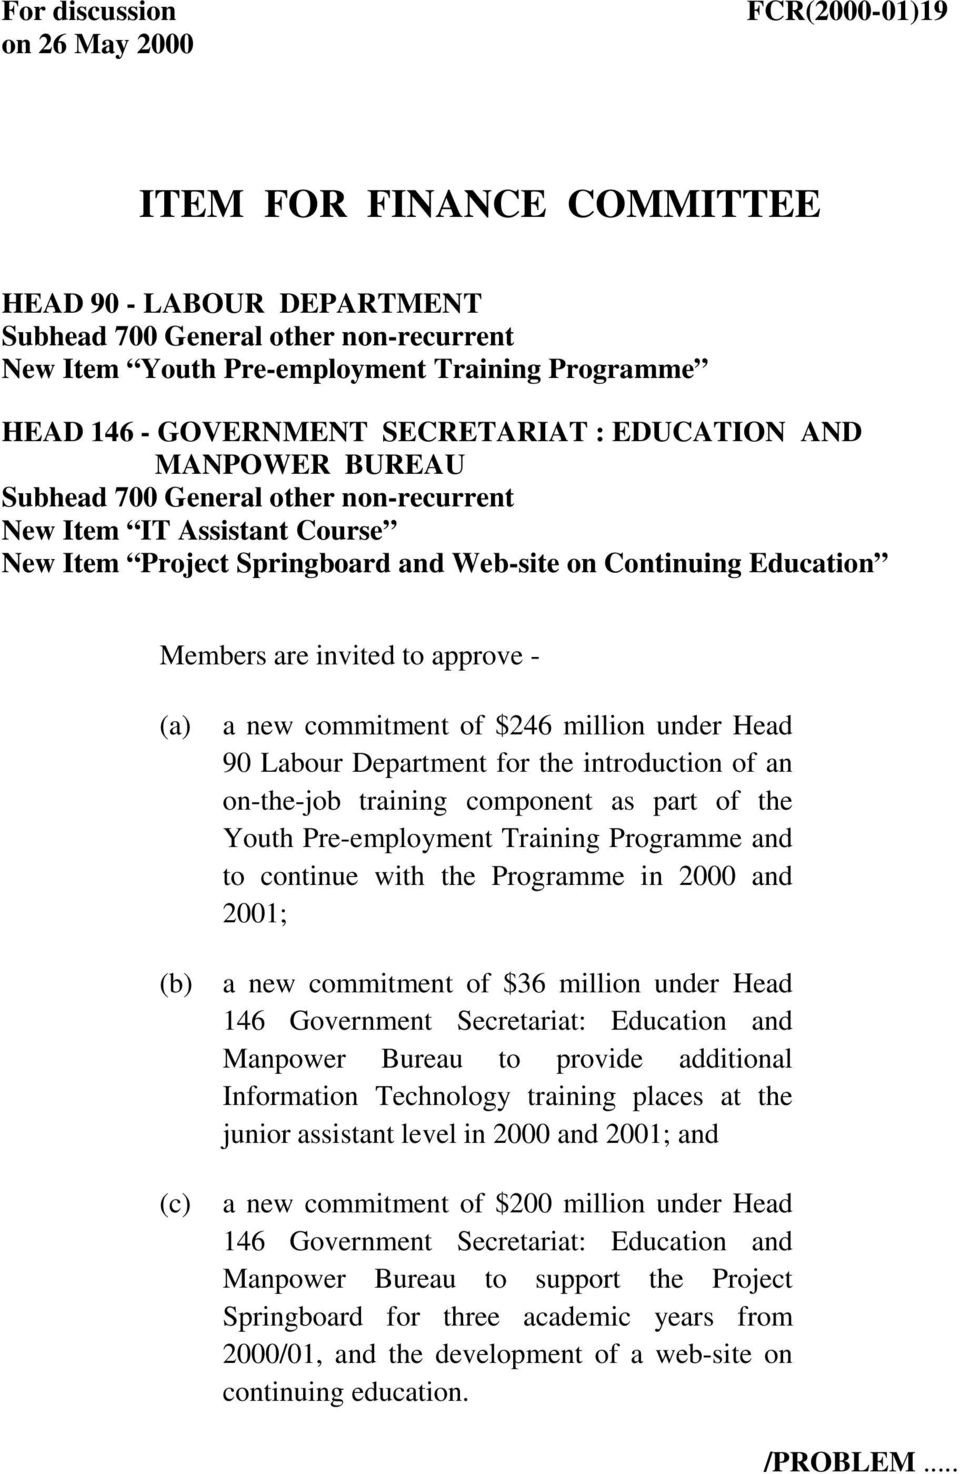 are invited to approve - a new commitment of $246 million under Head 90 Labour Department for the introduction of an on-the-job training component as part of the Youth Pre-employment Training